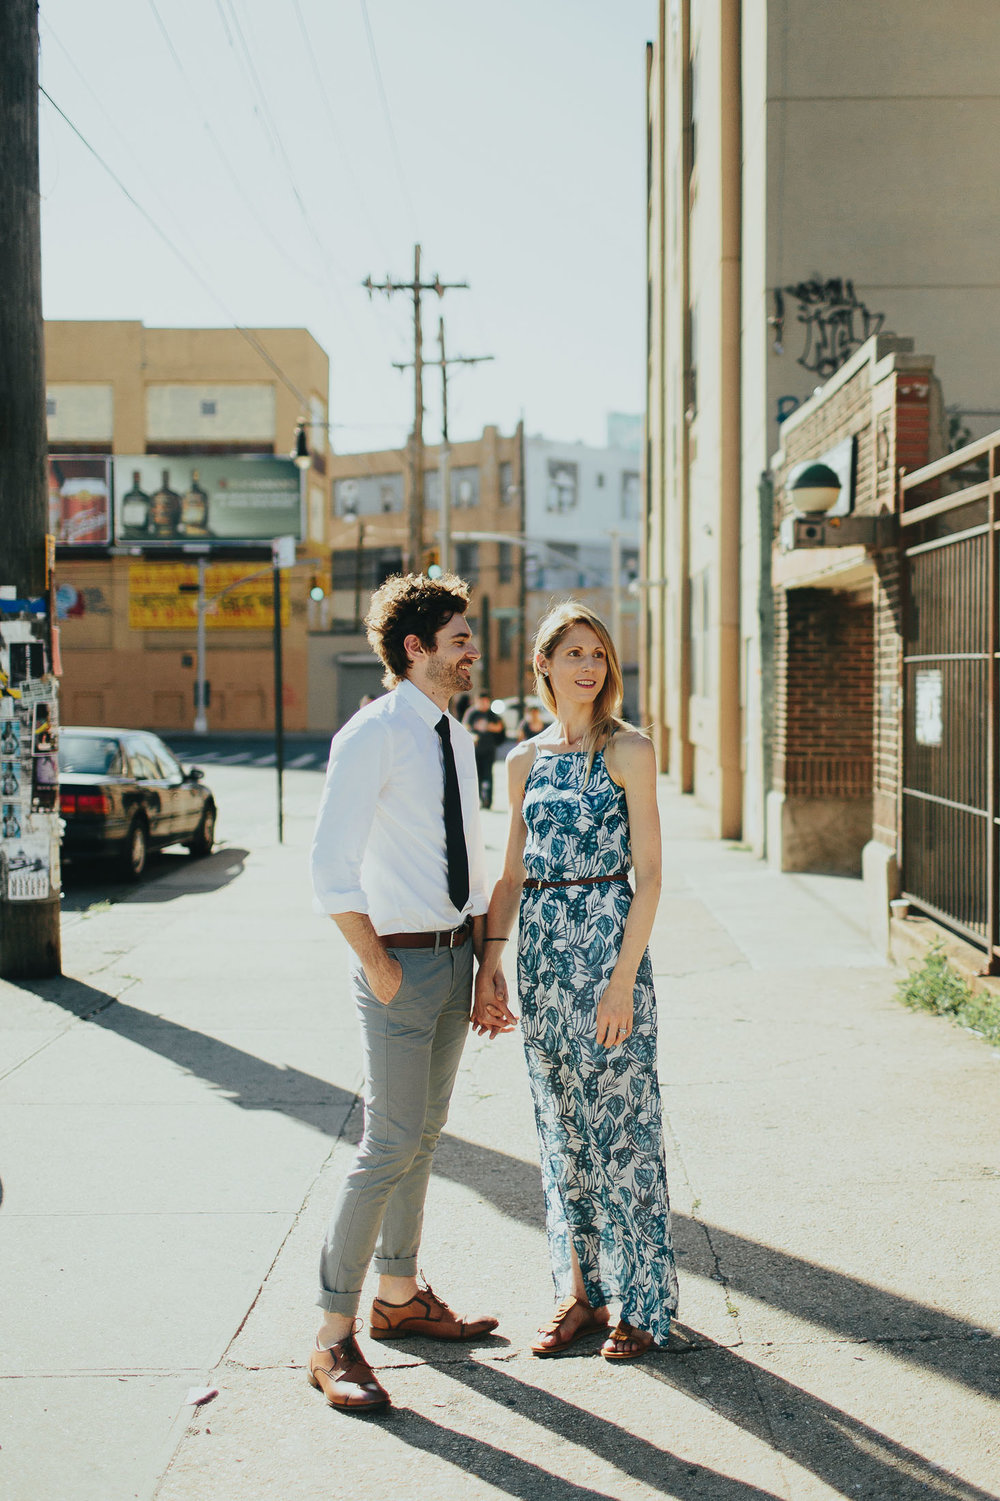 25 finch and oak engagement wedding photographer gold coast new york brooklyn.jpg